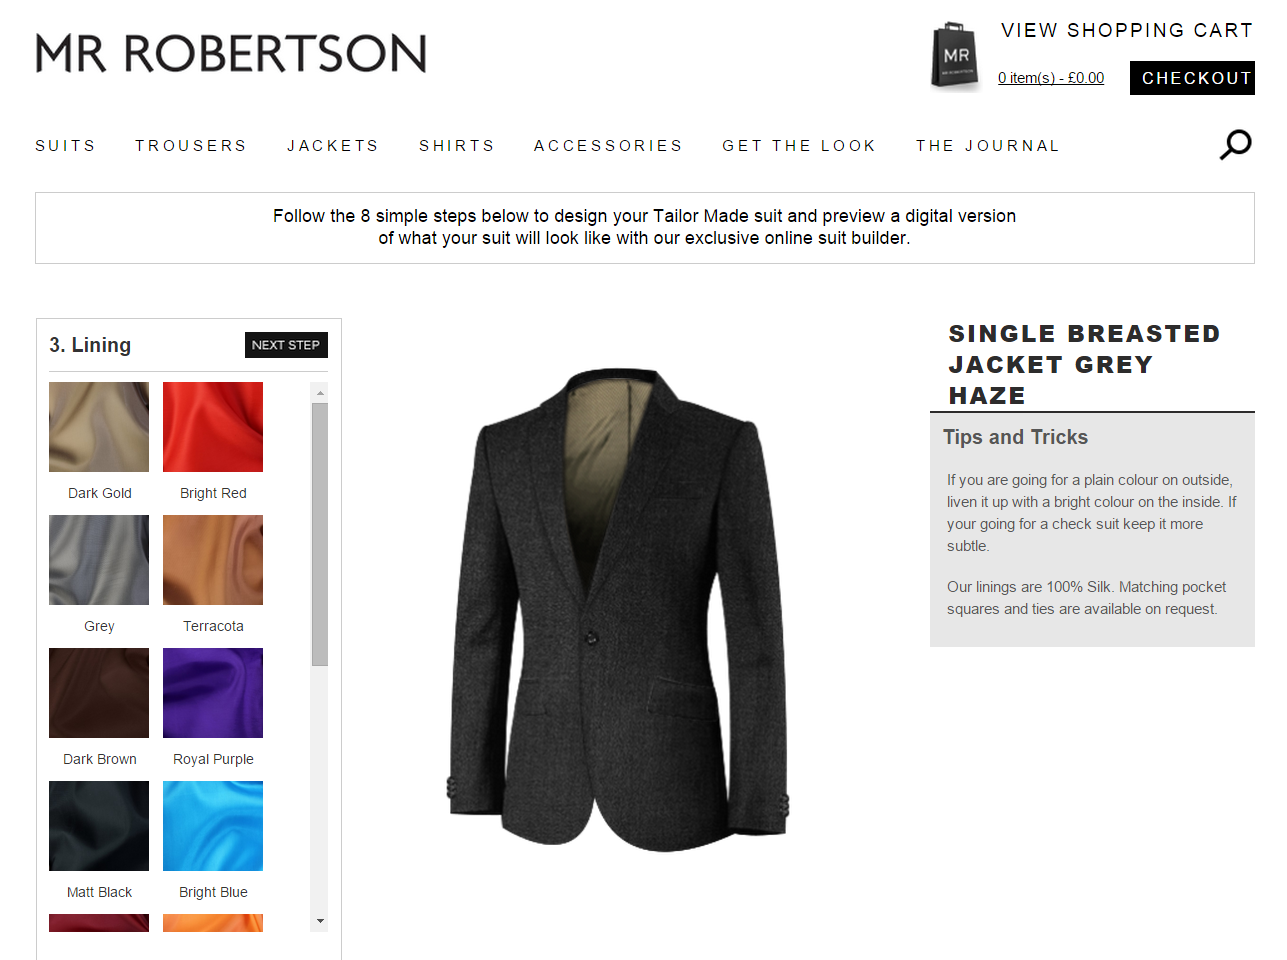 REVIEW: Mr Robertson custom shirts and suits | The Test Pit